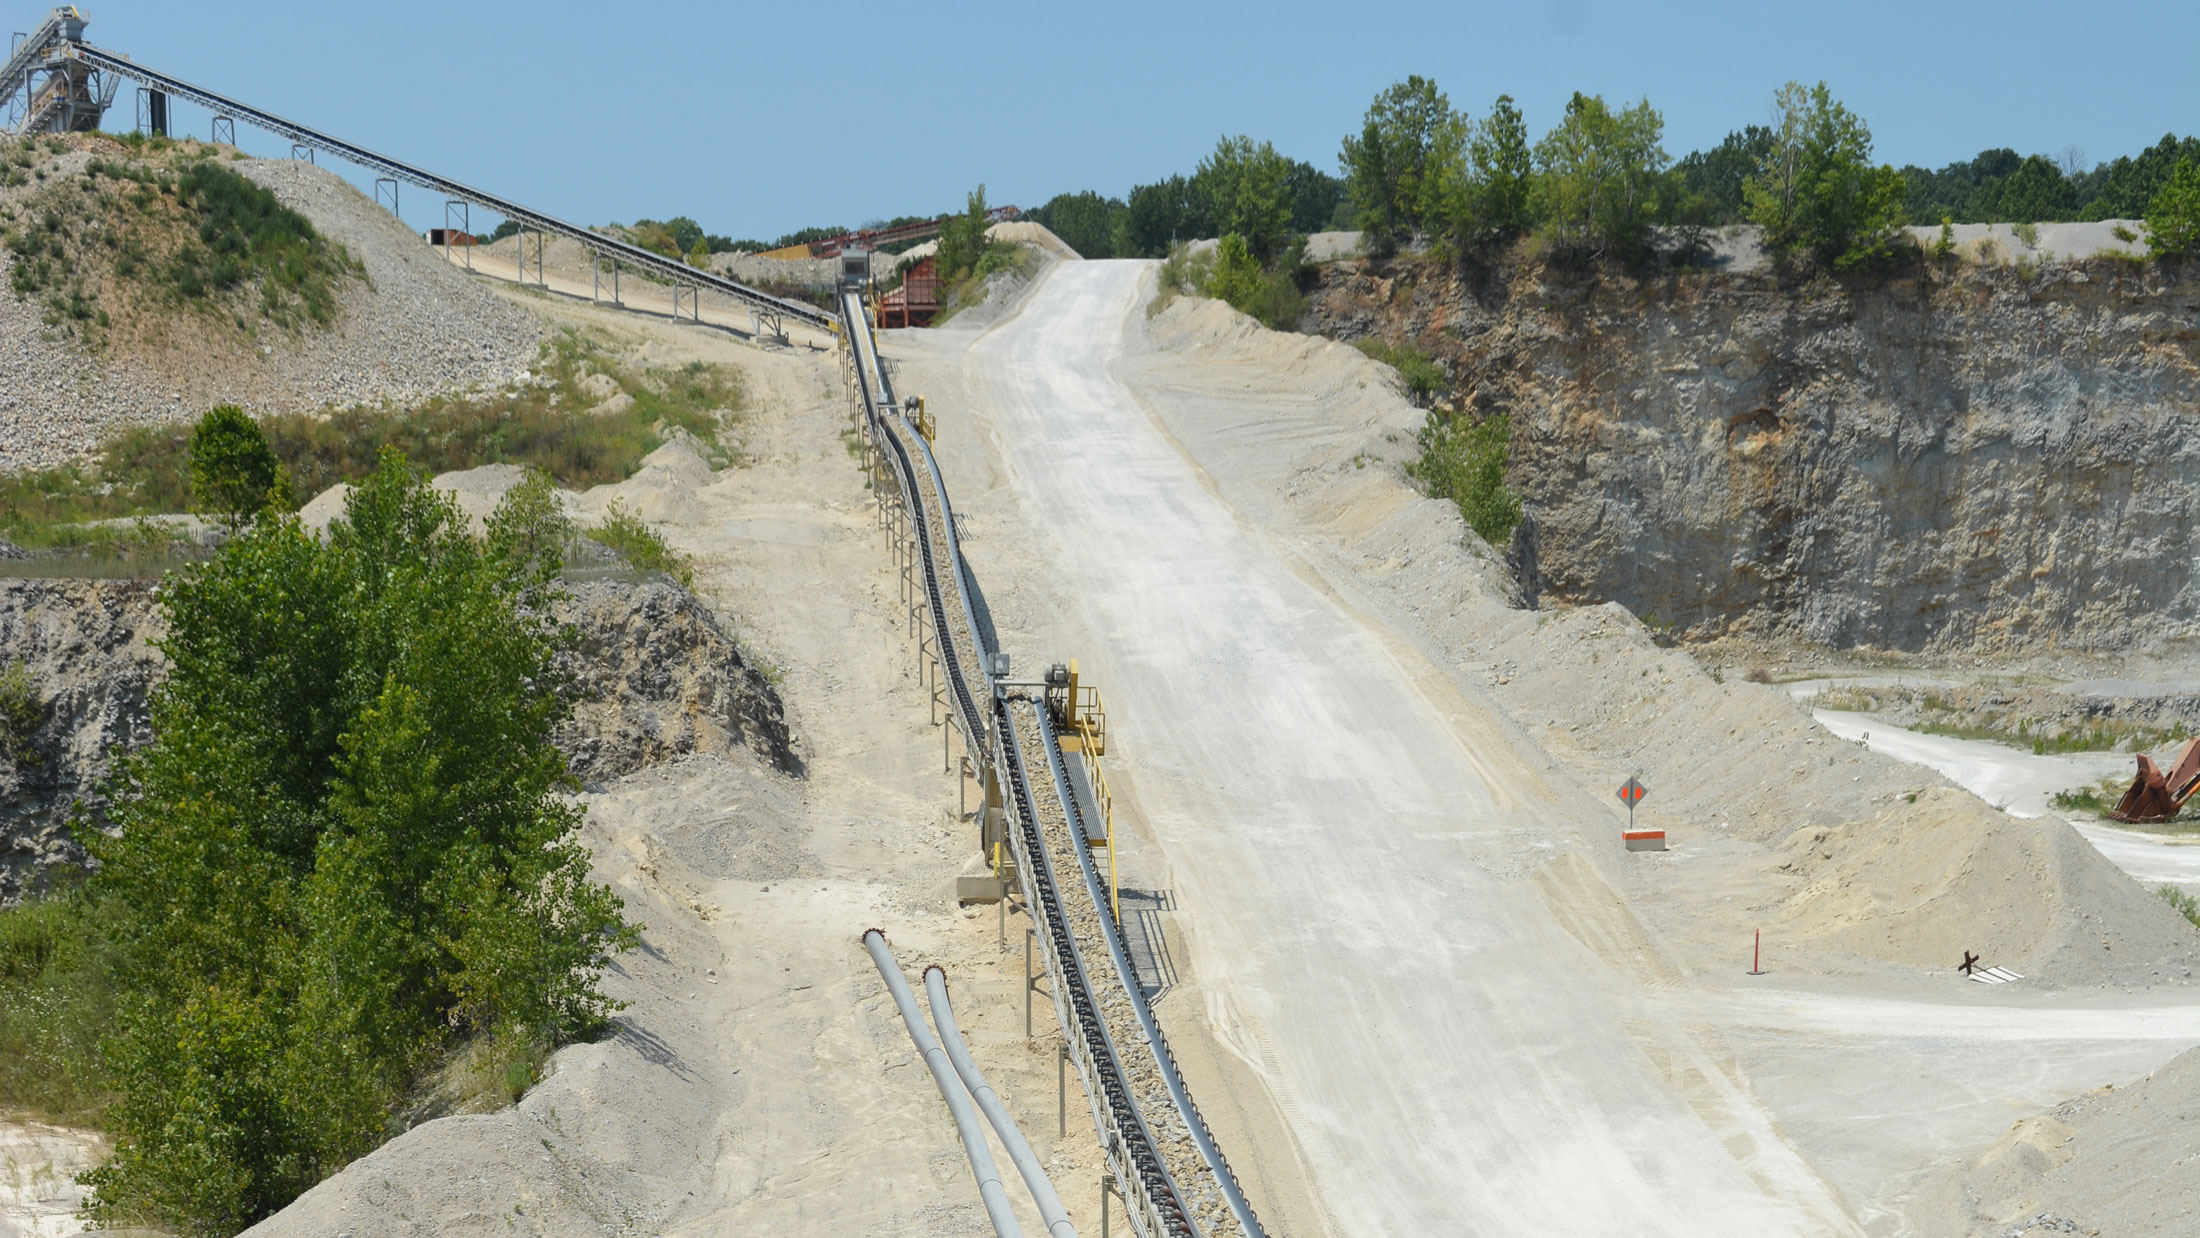 Conveyors at Delphi quarry